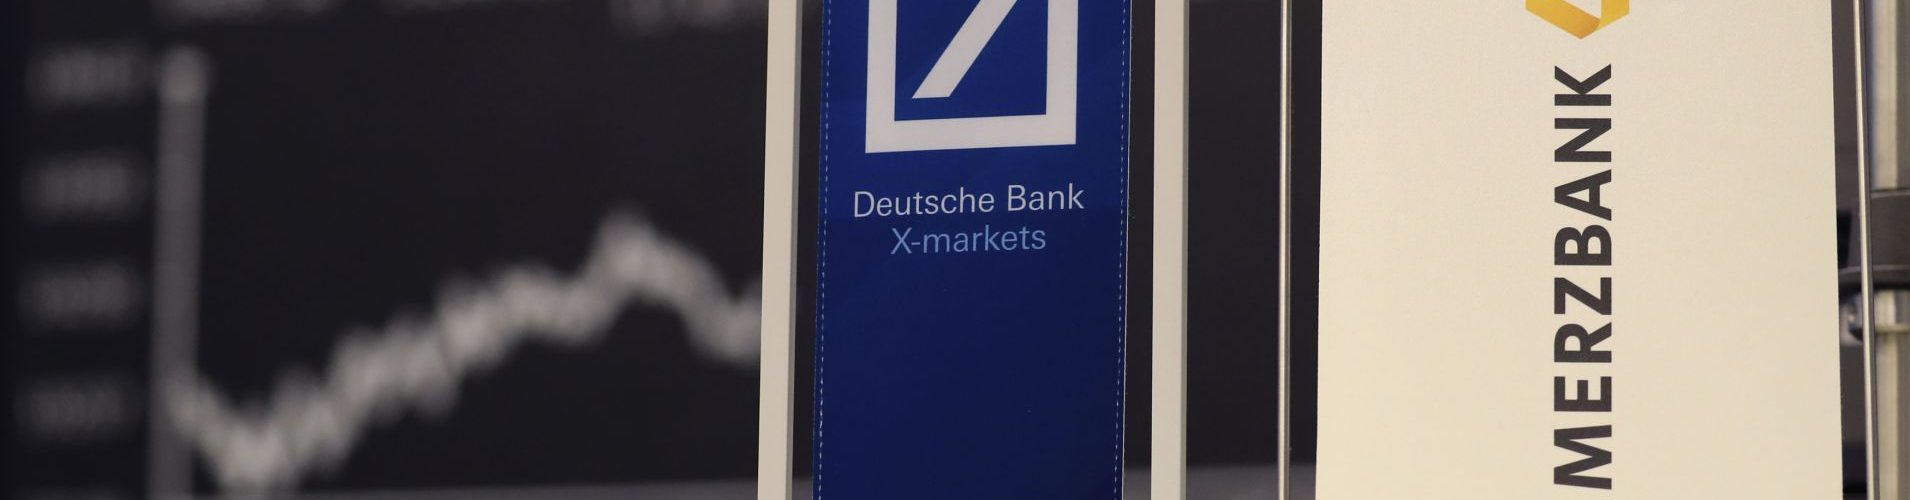 Deutsche Bank and Commerzbank's CEOs are reportedly resuming talks over a potential merger